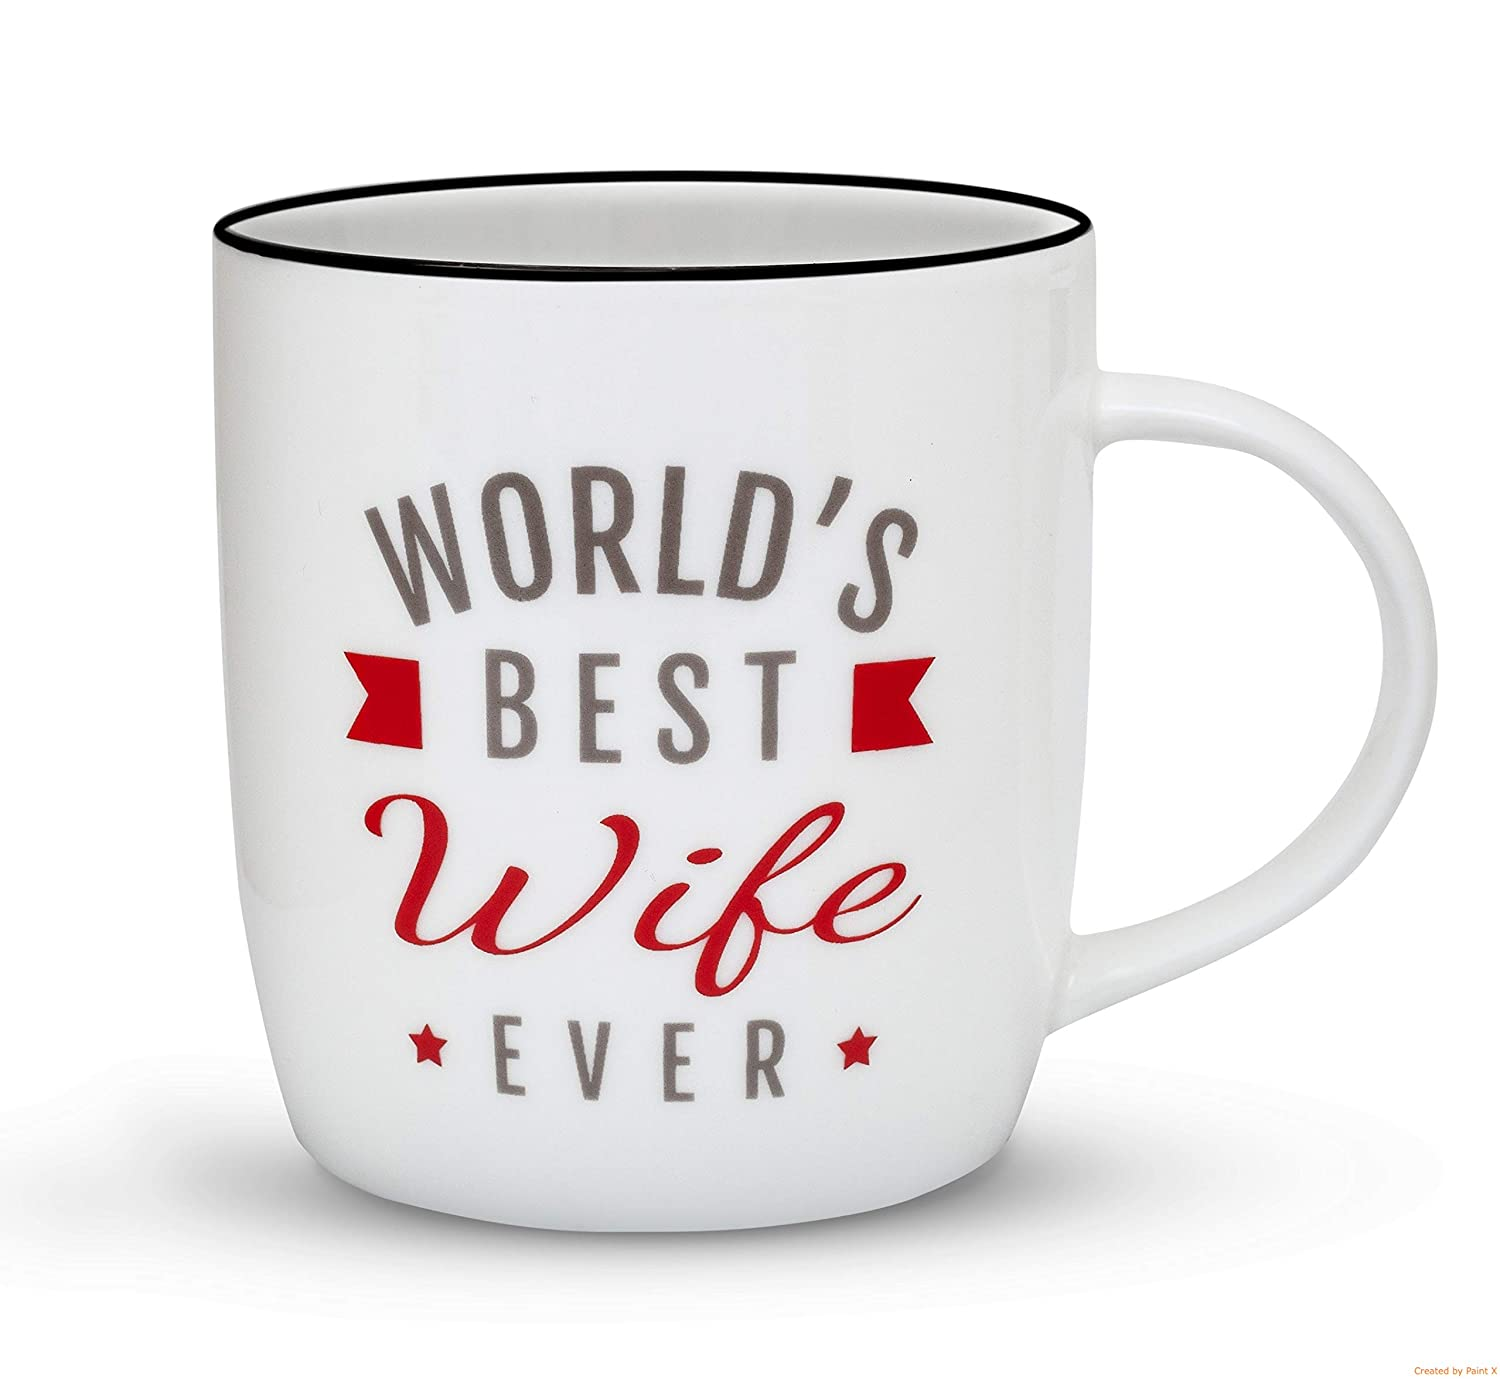 Gifffted Worlds Best Wife Ever Coffee Mug, Funny Anniversary and Birthday Gift for Her, Unique Wives Gifts from Husband for Women, Ceramic, 13 oz Cup HS